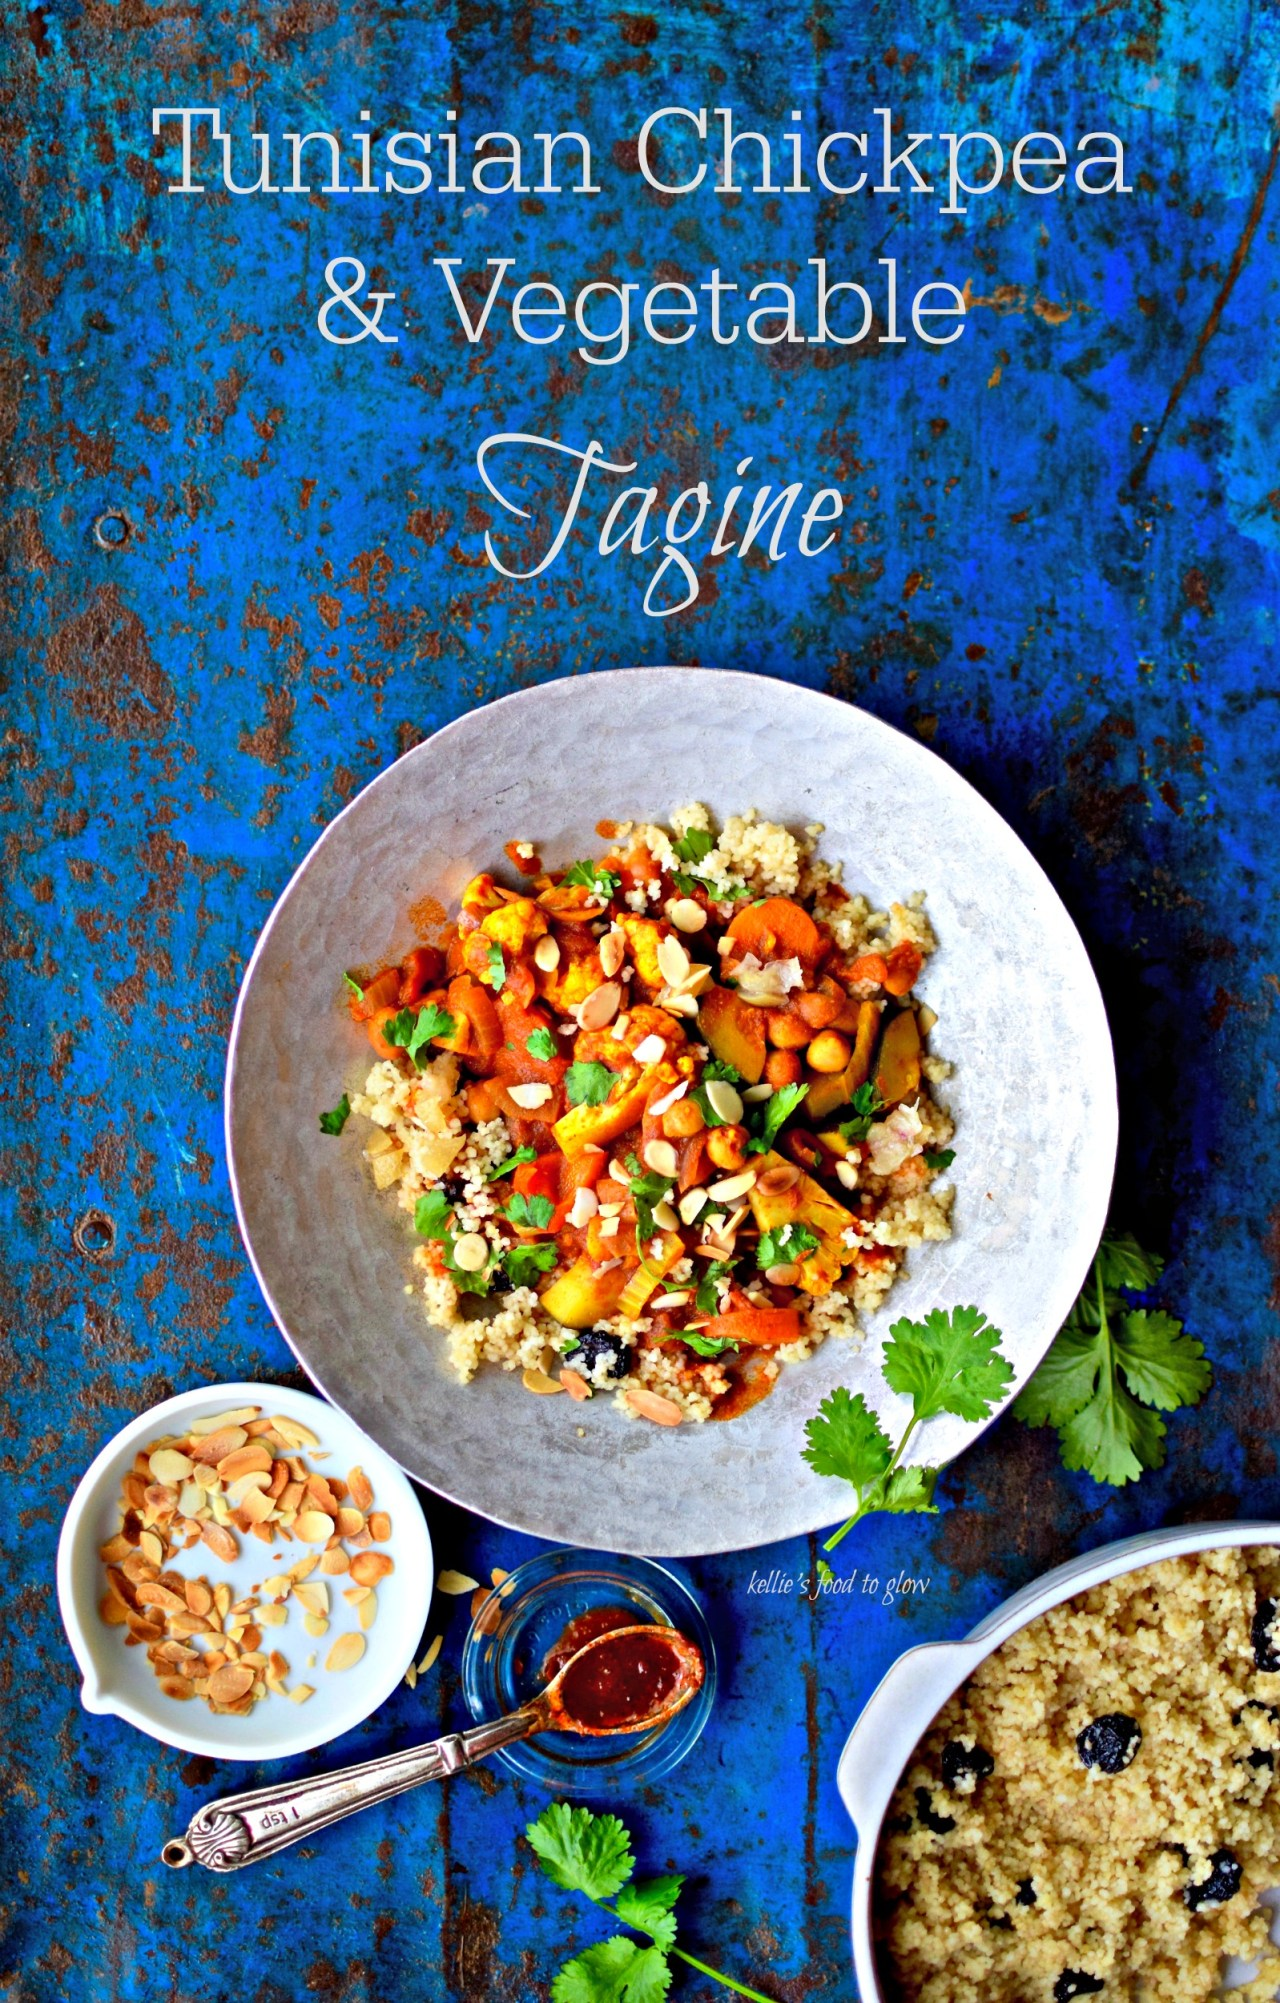 This is an easy, warming vegan stew that is easy to double or halve, gets better as leftovers and freezes well. And as if that weren't enough, this tagine lends itself to using seasonal vegetable so is economical and environmentally friendly, too. In the summer, use more Mediterranean type veg and serve at room temperature. At any time of the year you can speed up the prep by using frozen vegetables. Serve for dinner or lunch with green salad plus couscous, quinoa, baked potato, steamed pitta bread or in wraps. Extra harissa and a few slices of griddled halloumi are great add-ins.